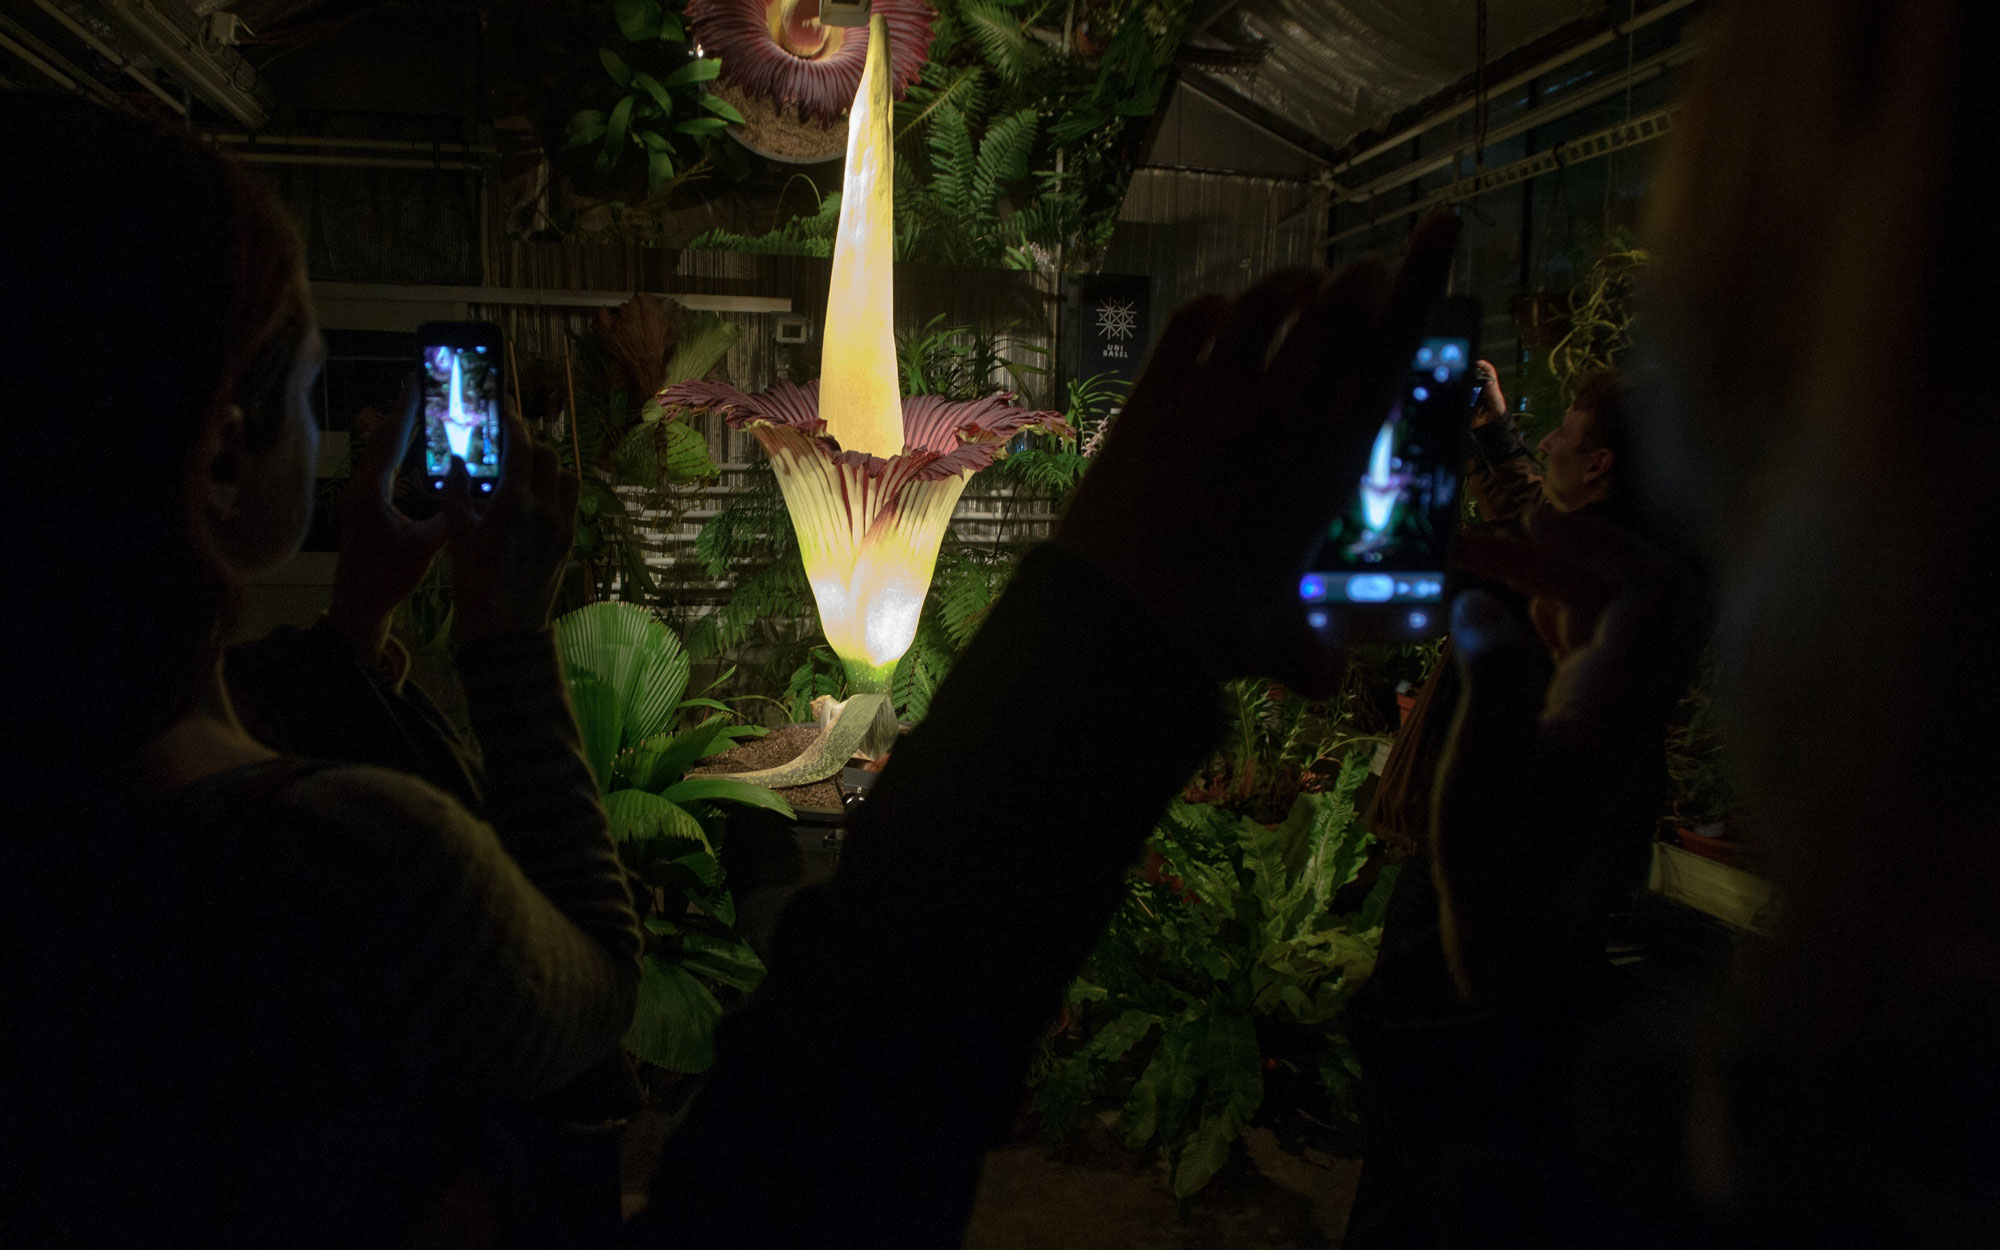 In Texas, a Giant, Smelly 'Corpse Flower' Named Morticia Bloomed: Watch the Video